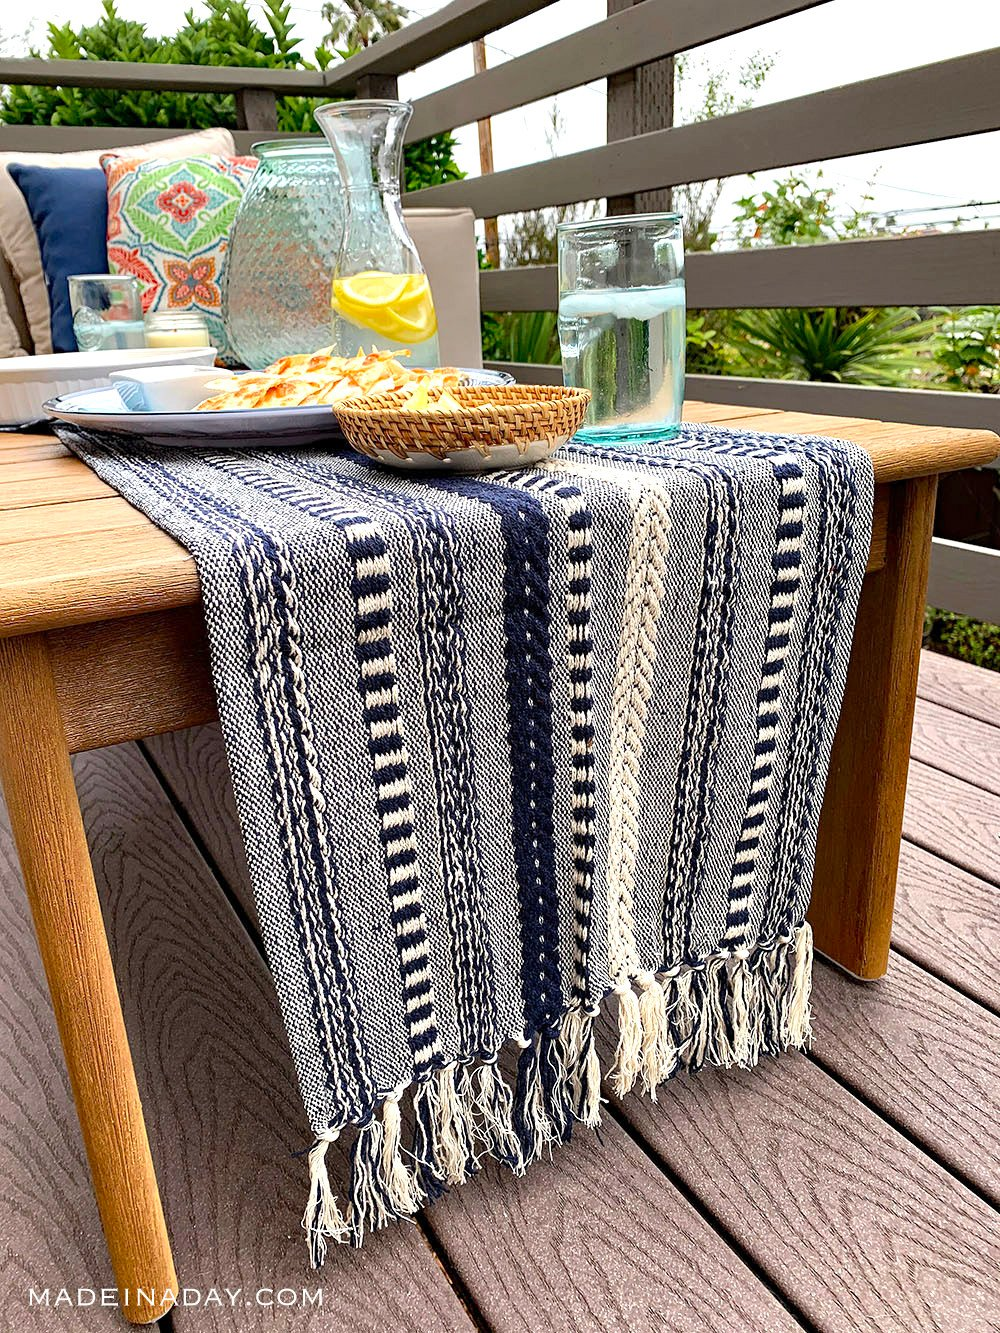 Bungalow rose braided stripe table runner navy, boho table runner